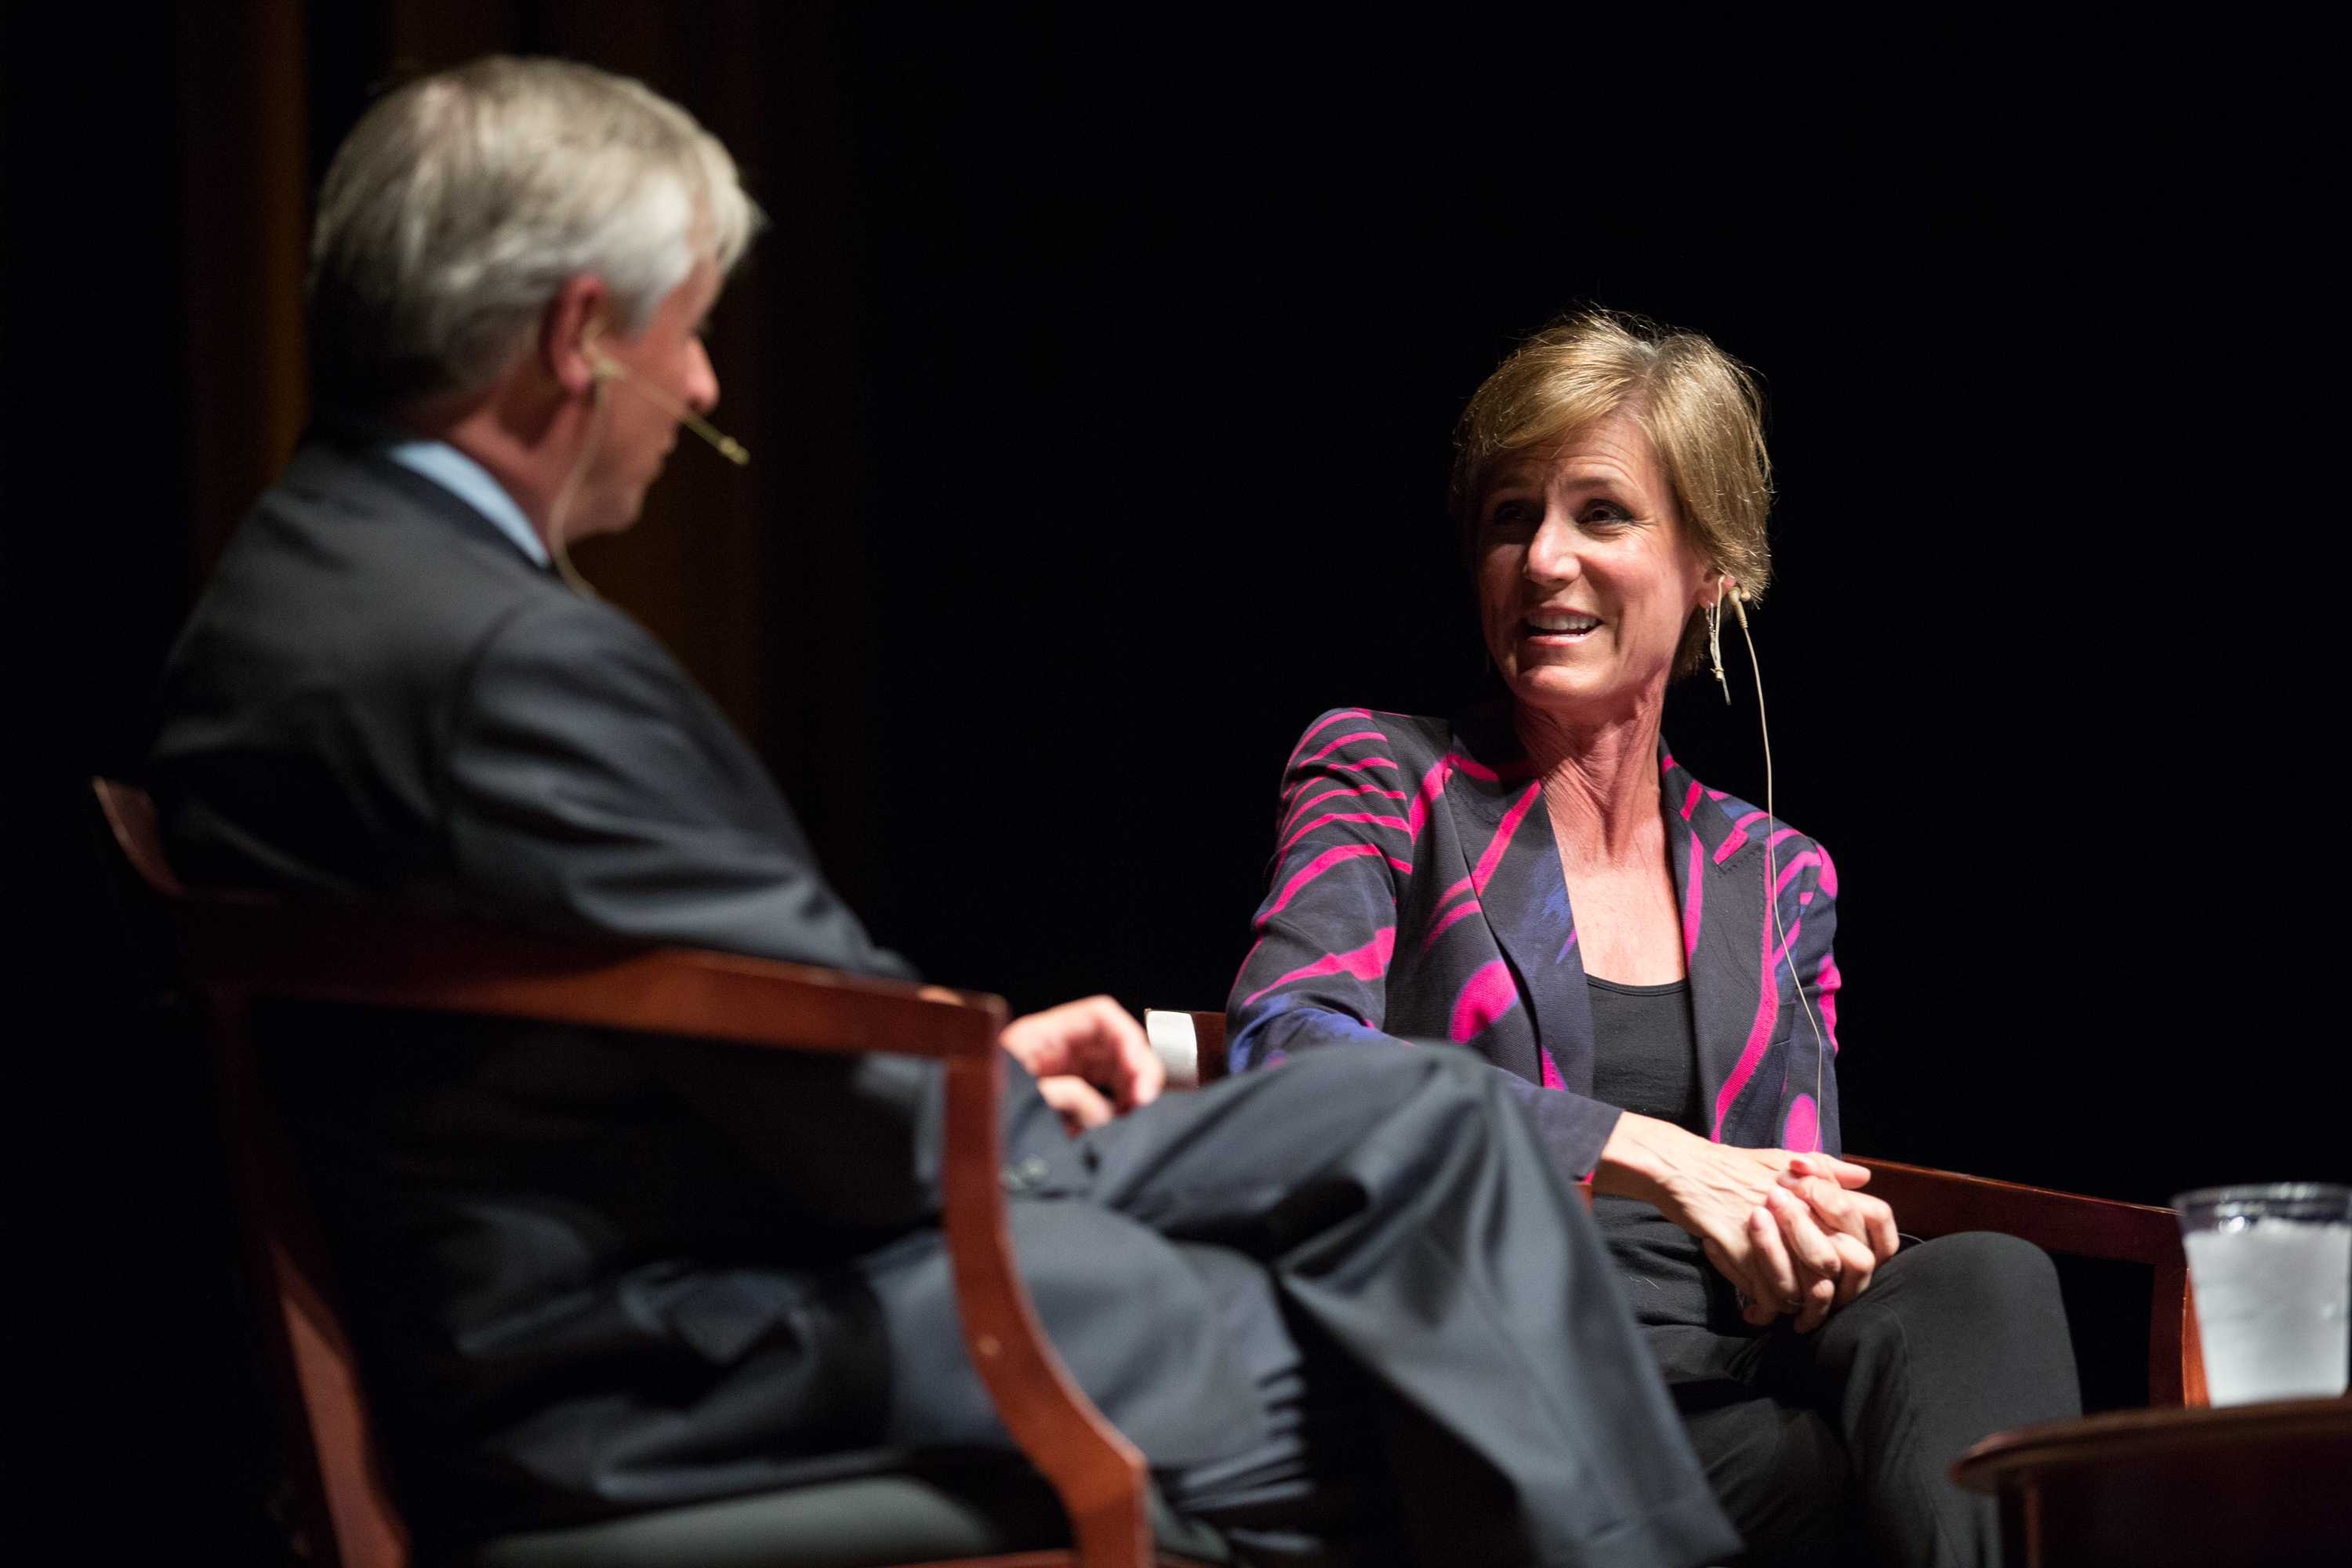 Q&A with Sally Yates, former United States Deputy Attorney General